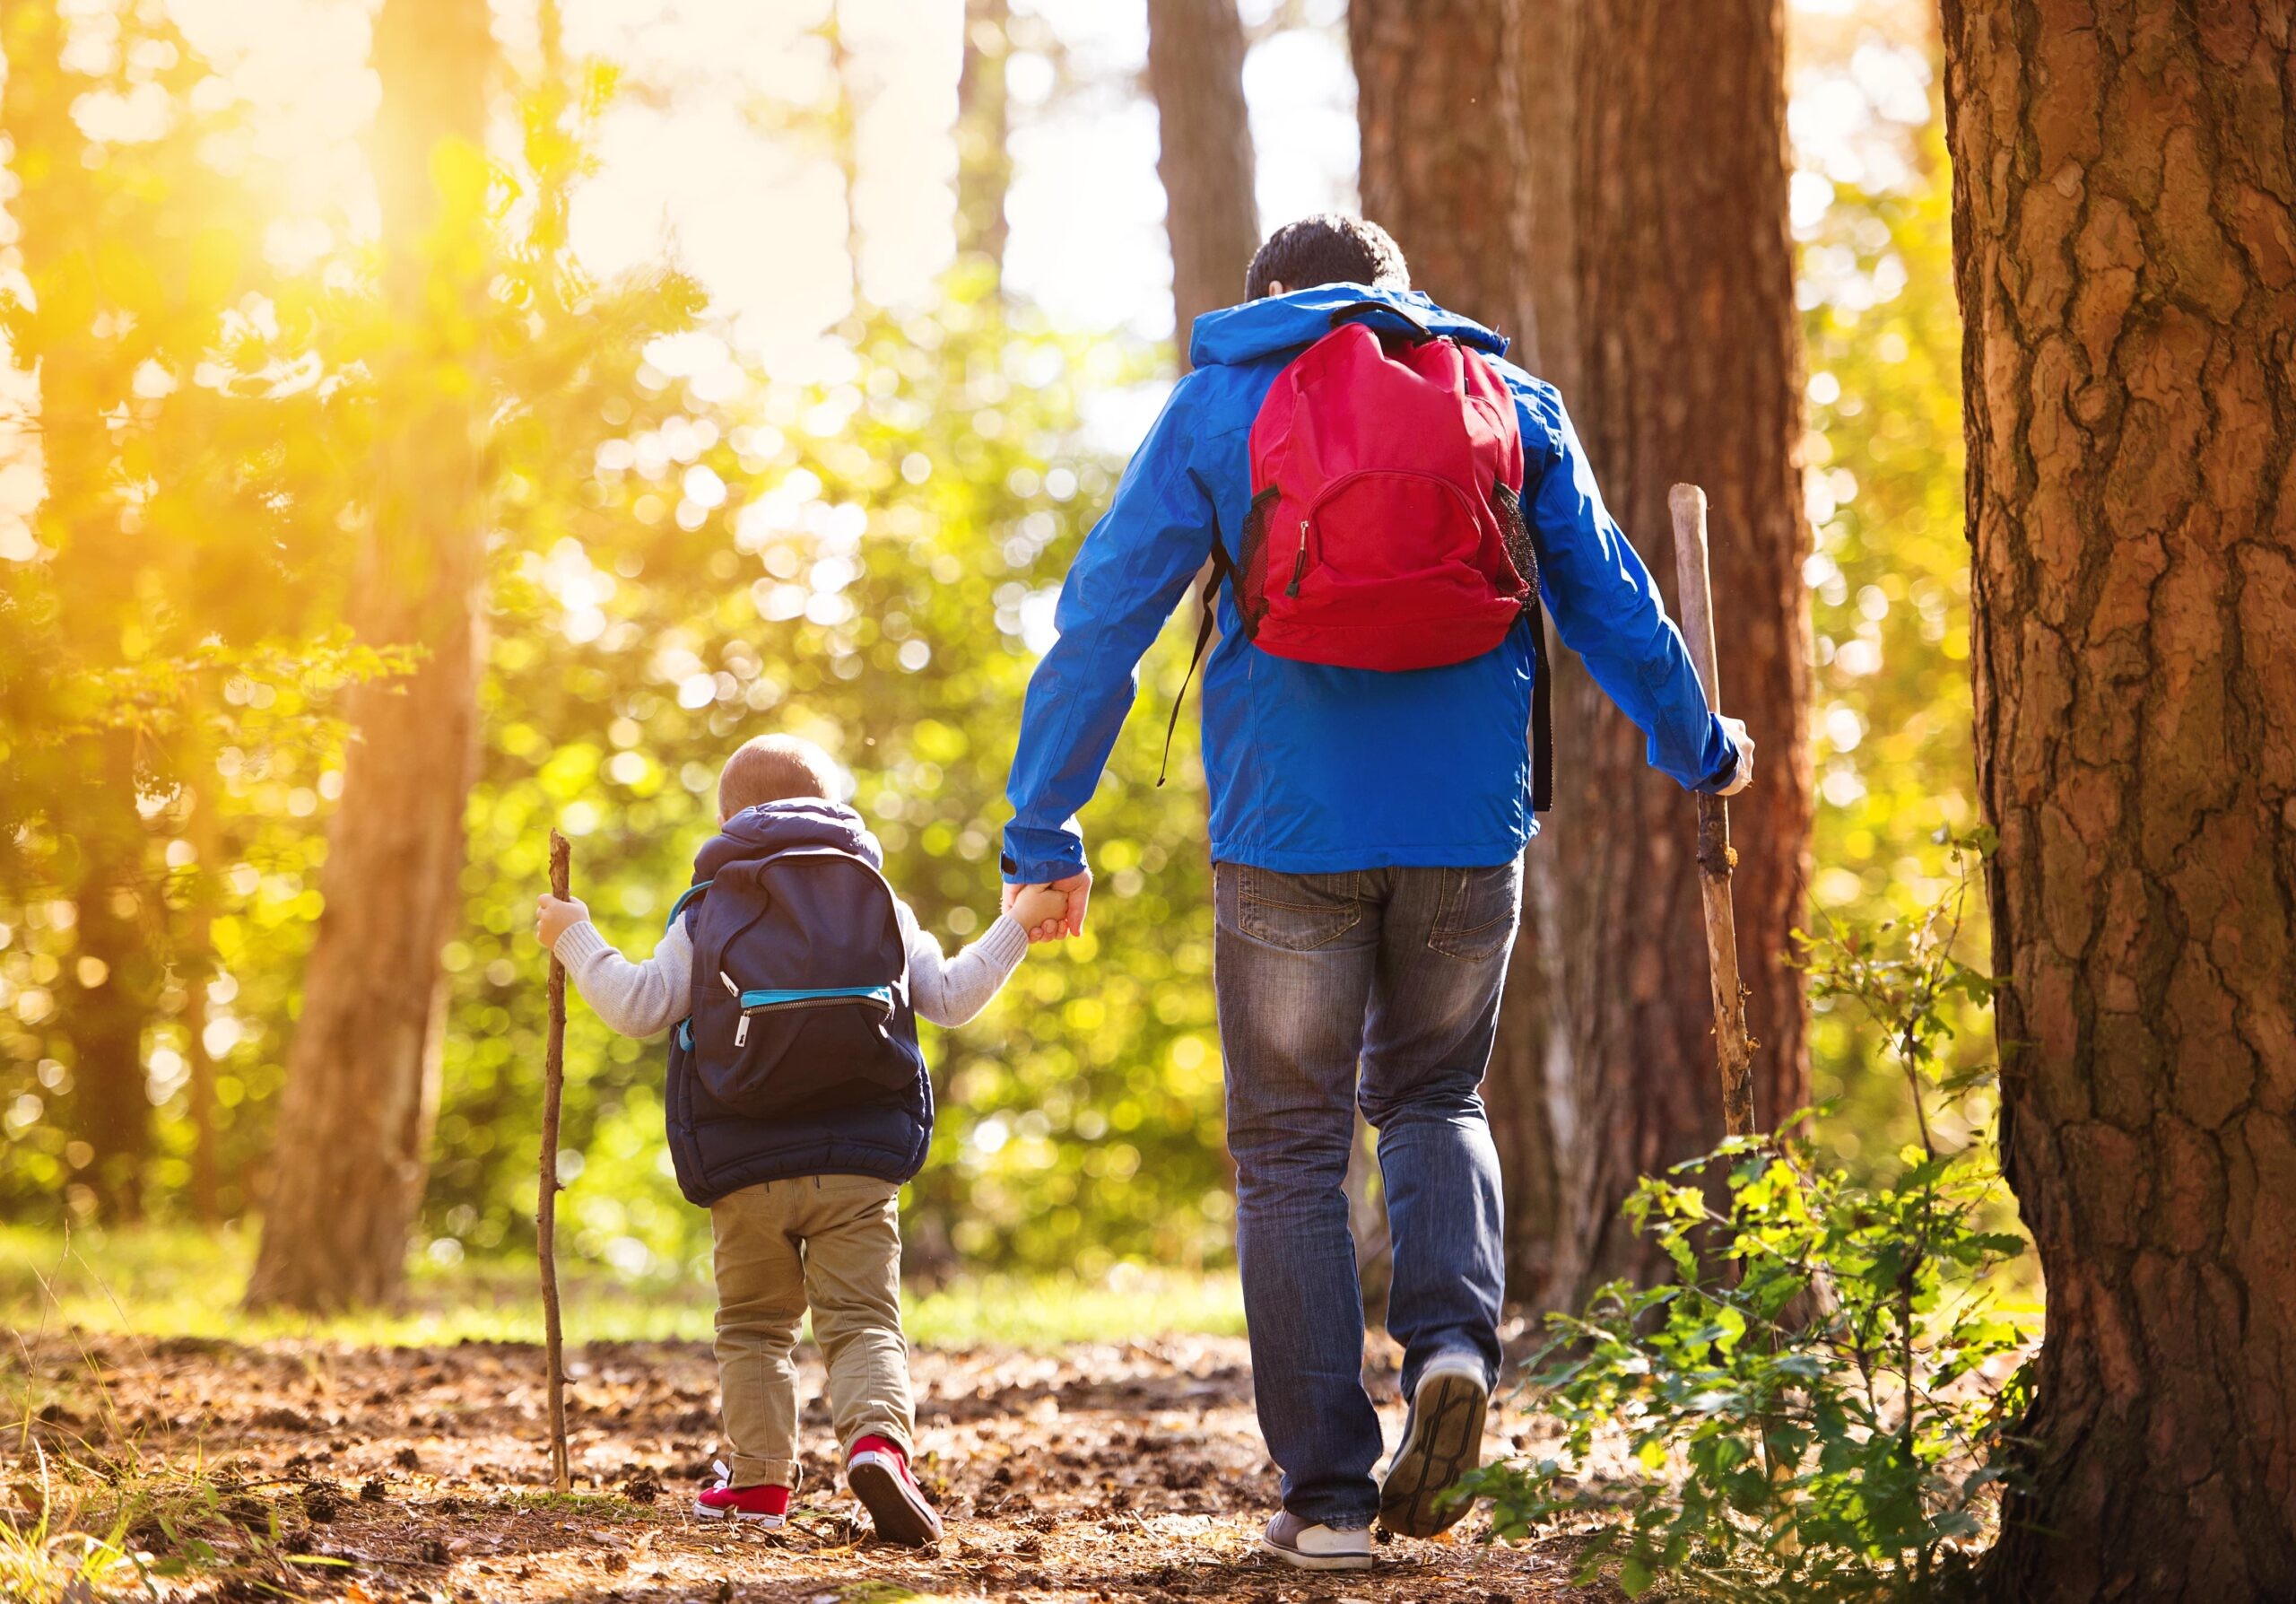 Kid and father hiking in forest